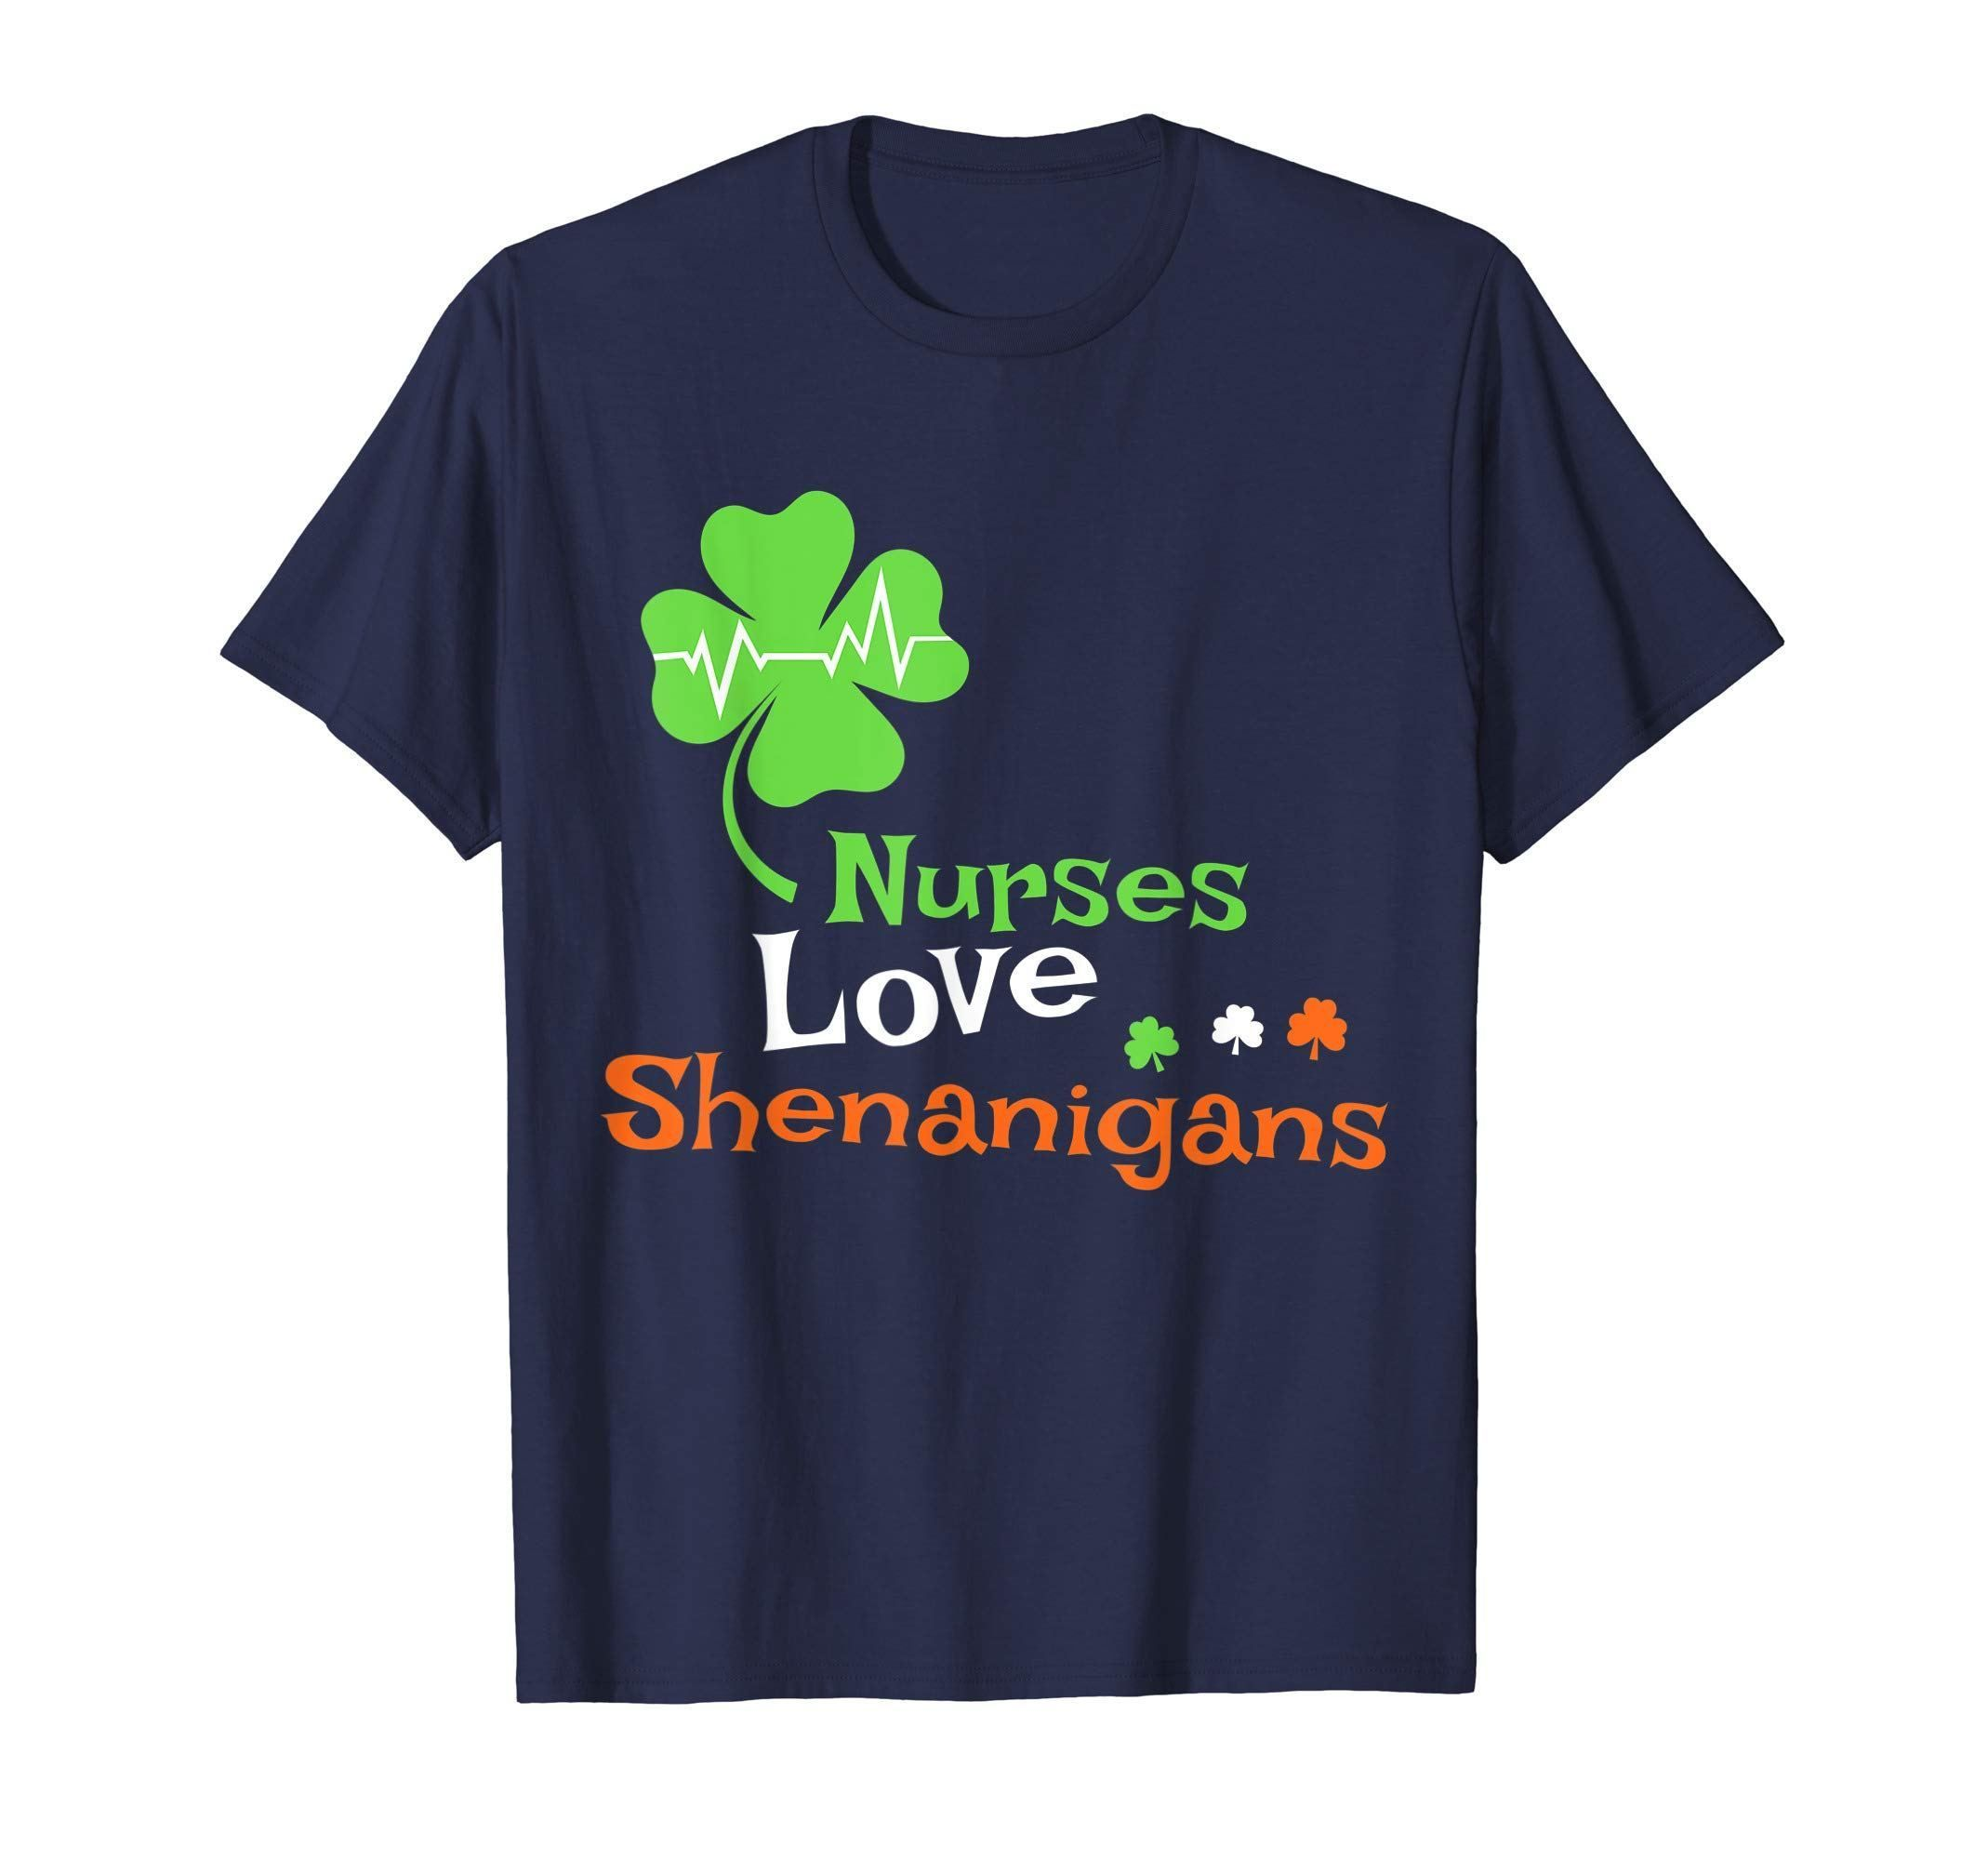 5bda1171 Nurses Love Shenanigans Funny St Patrick Day Men Women Shirt Price($):17.1